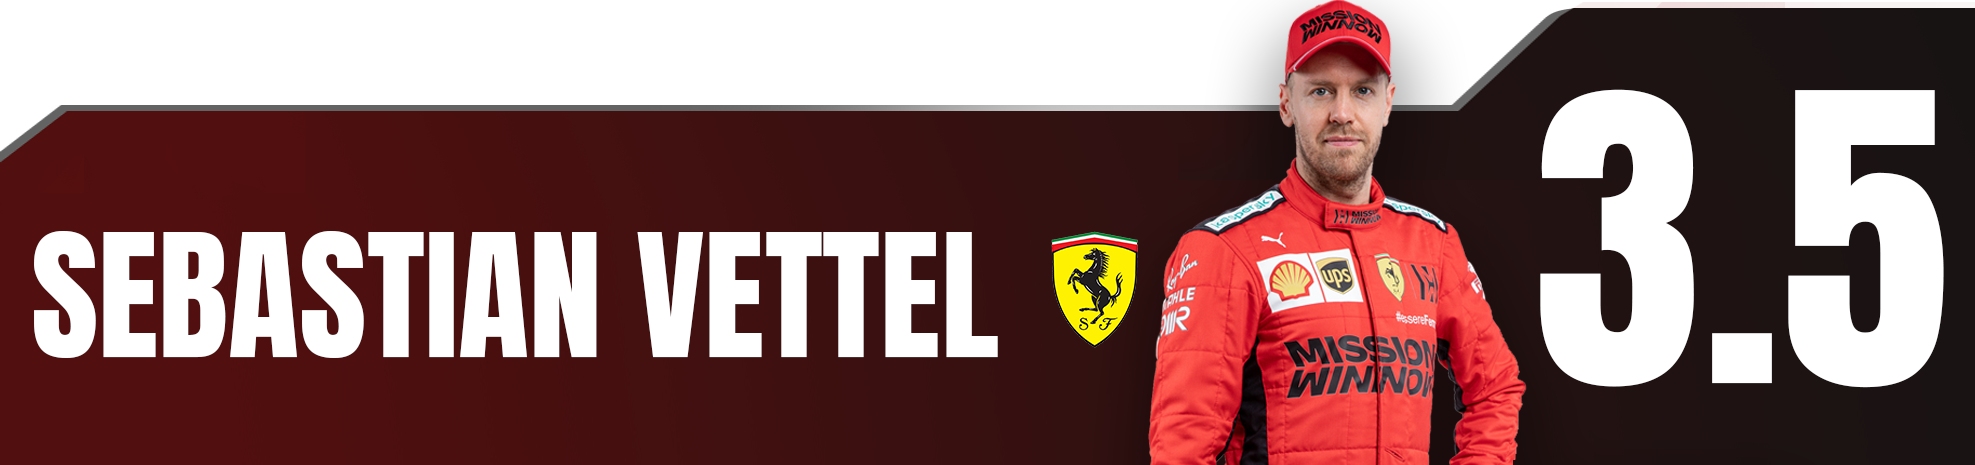 Sebastian Vettel Ratings